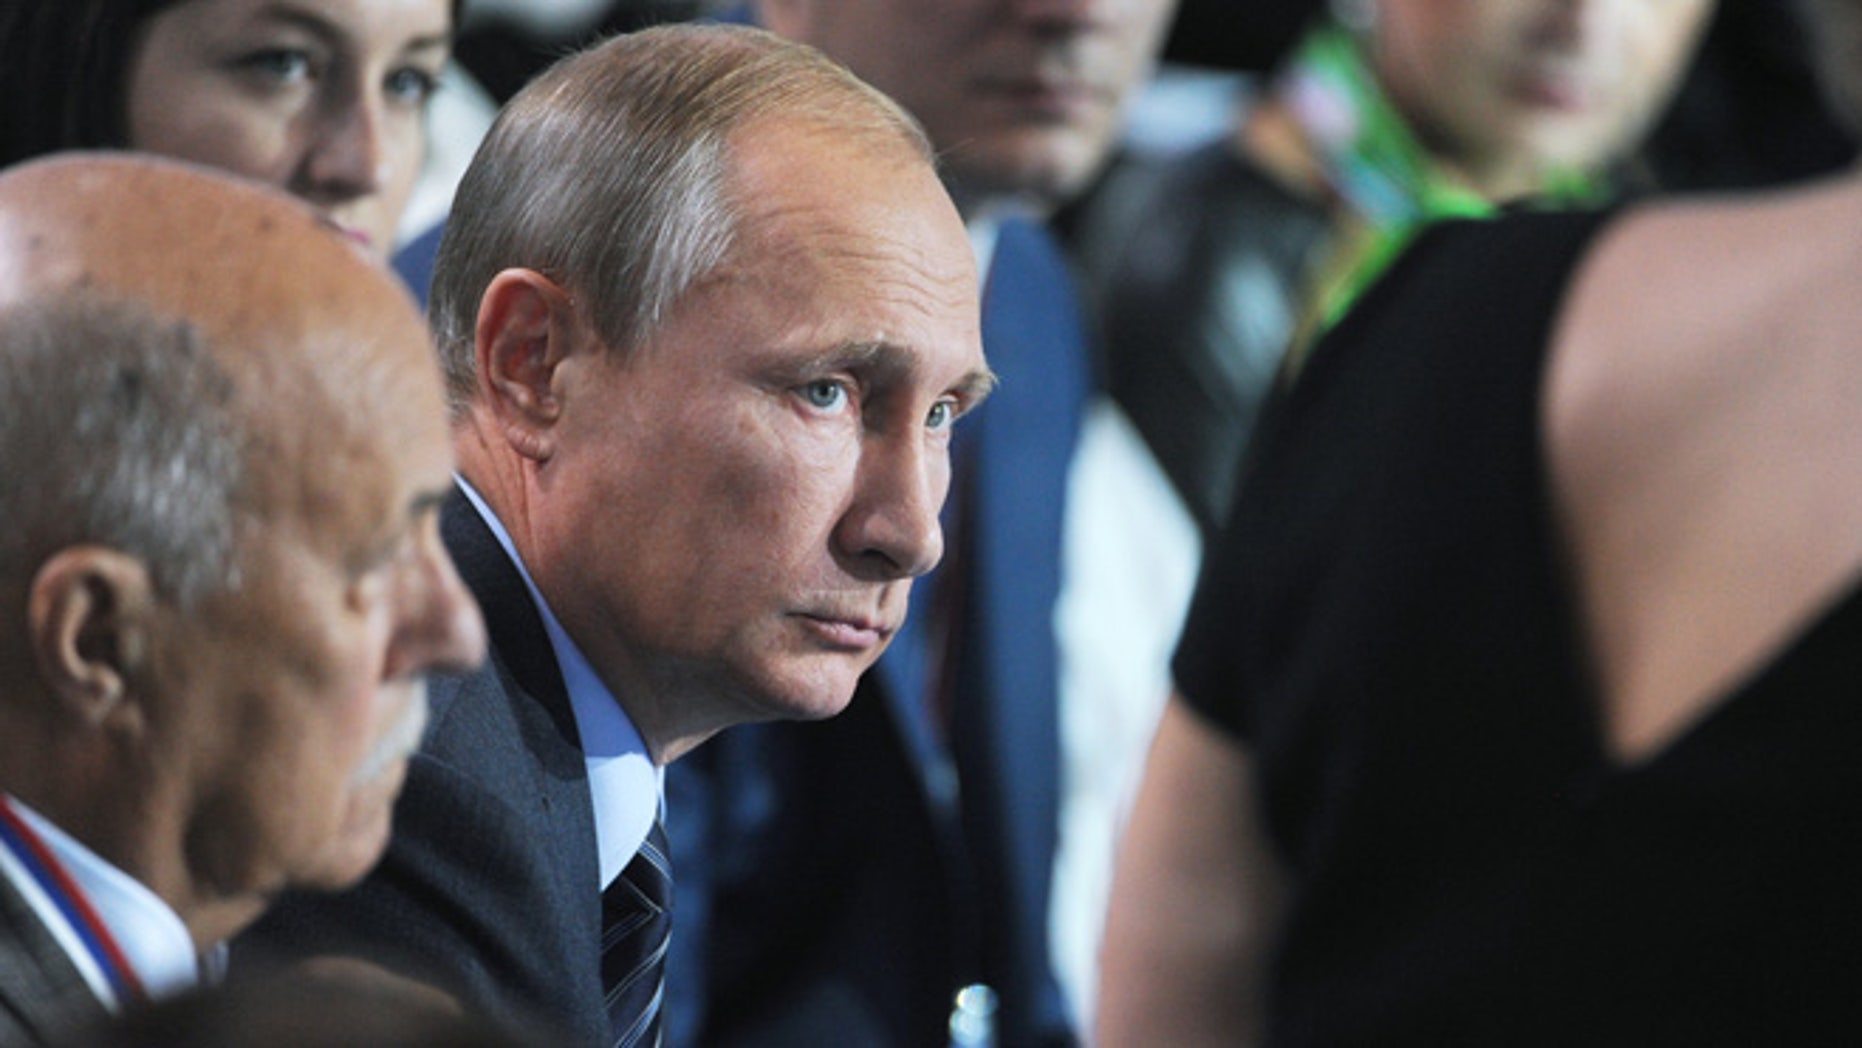 Sept. 7, 2015: Russian President Vladimir Putin, center, listens to a question during a meeting with his supporters in Moscow, Russia.